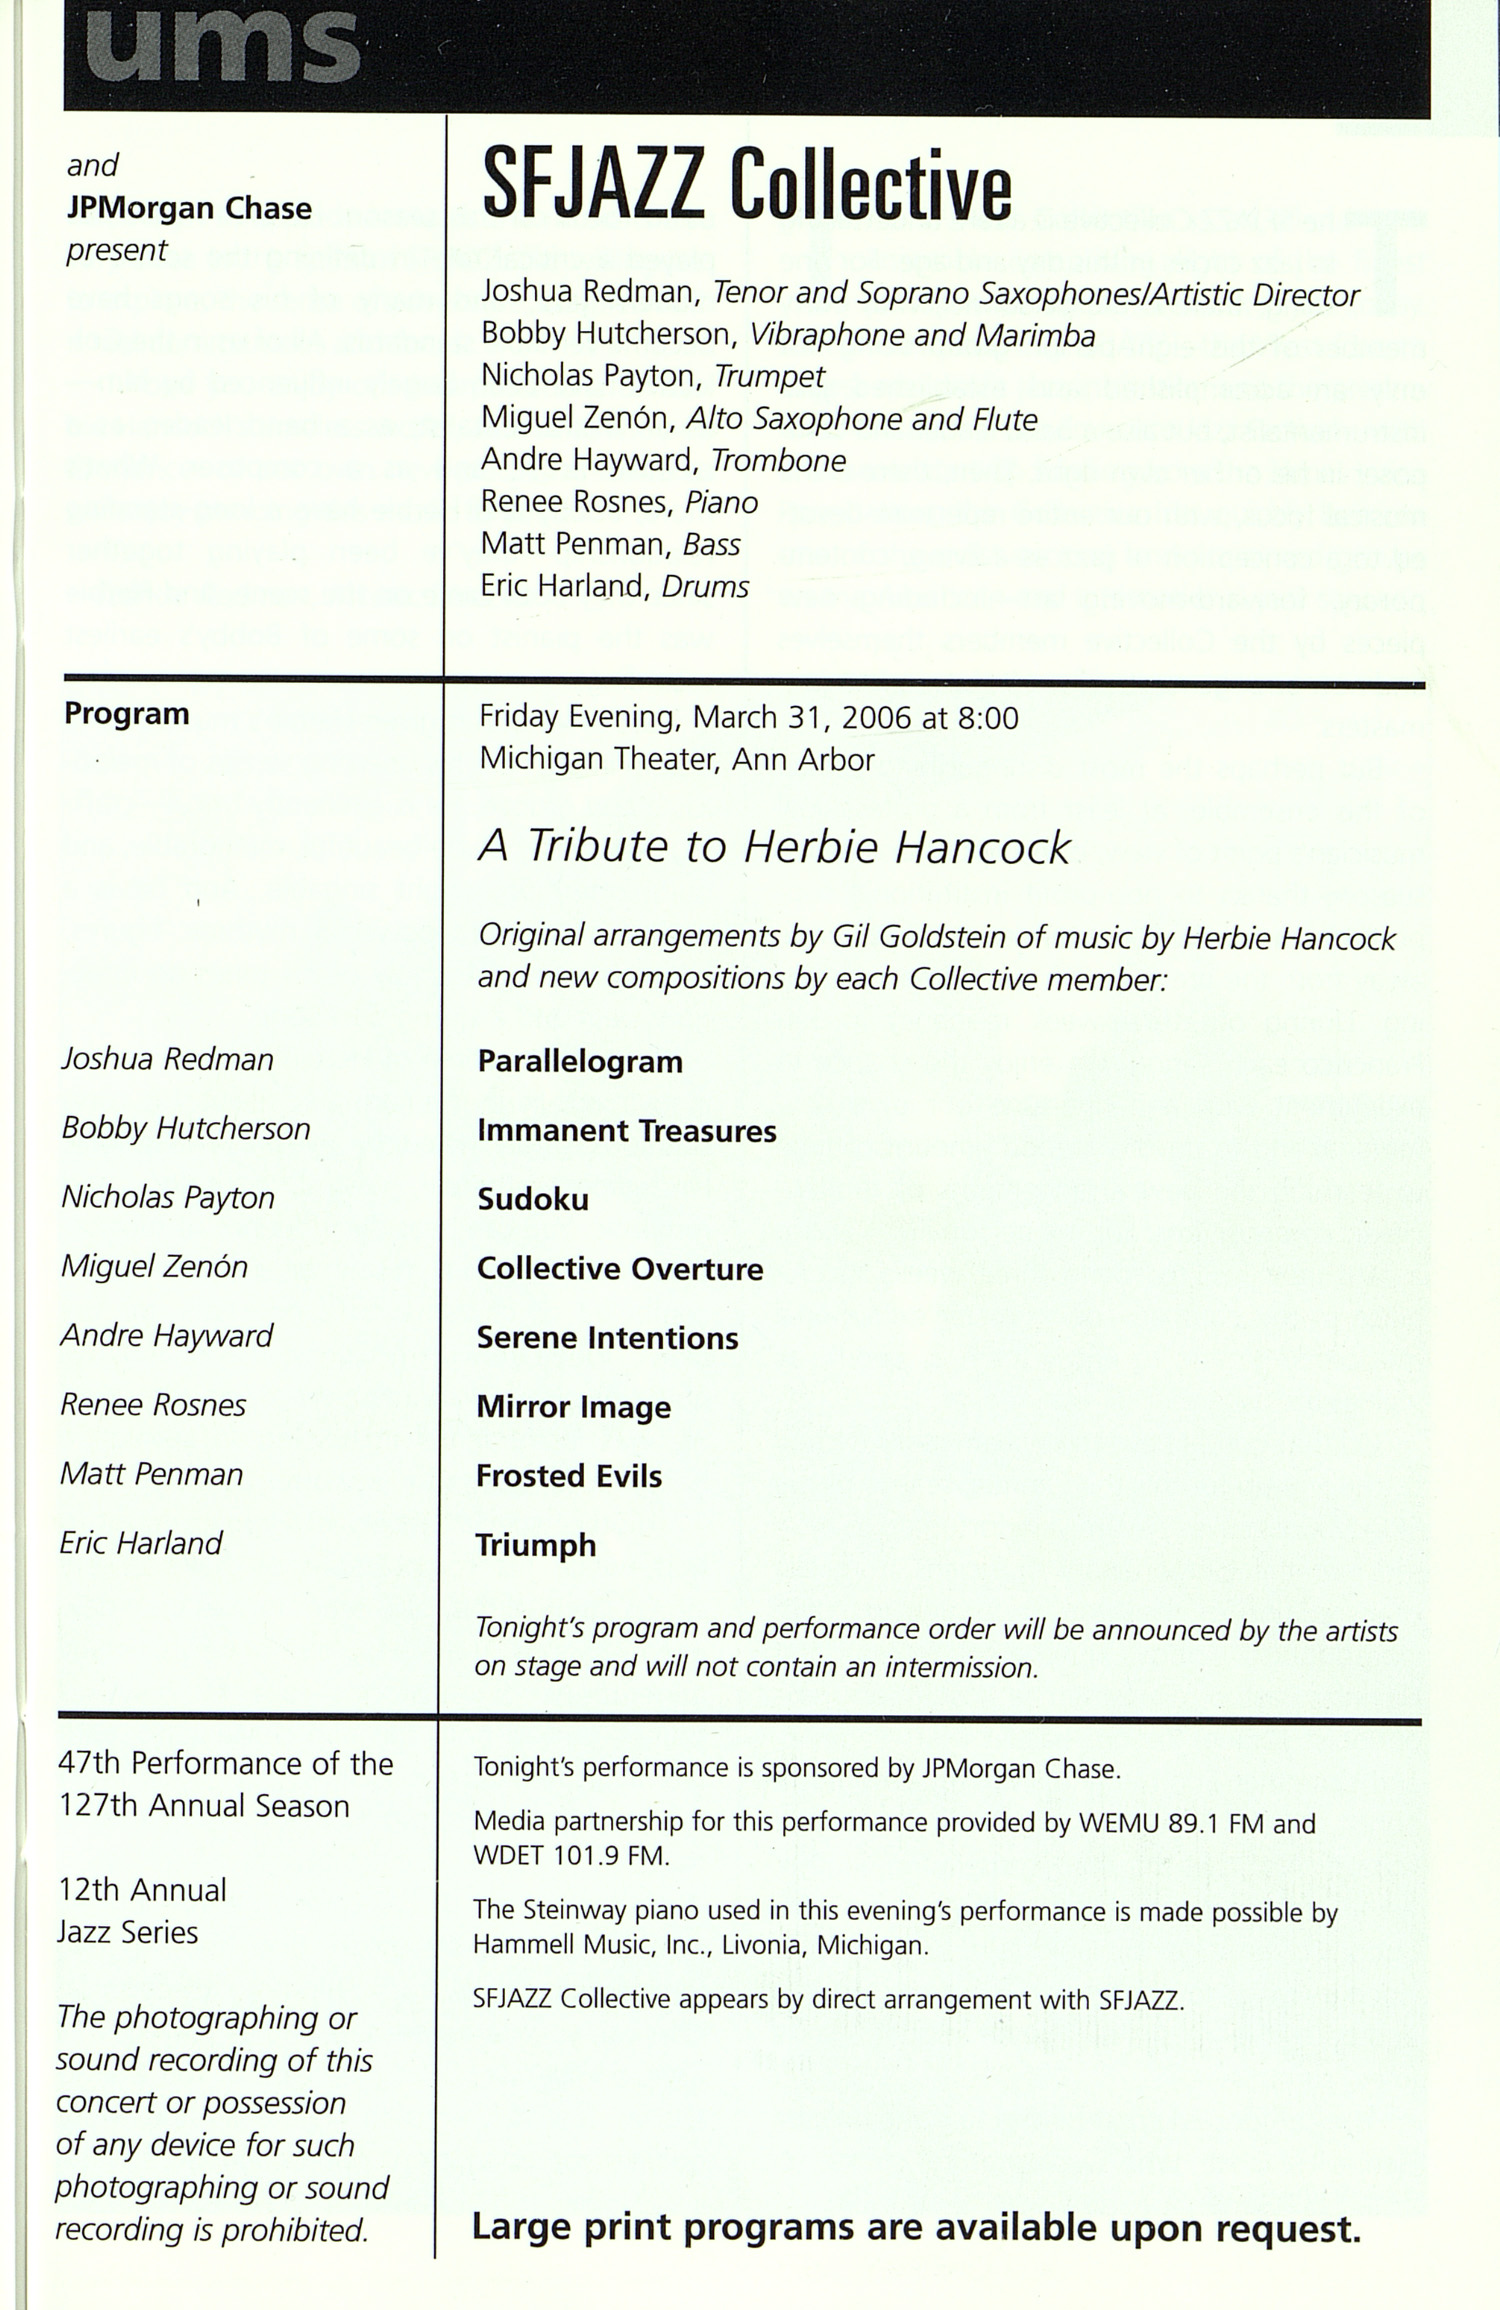 UMS Concert Program, Friday Mar. 31 To Apr. 15: University Musical Society: Winter 2006 - Friday Mar. 31 To Apr. 15 --  image